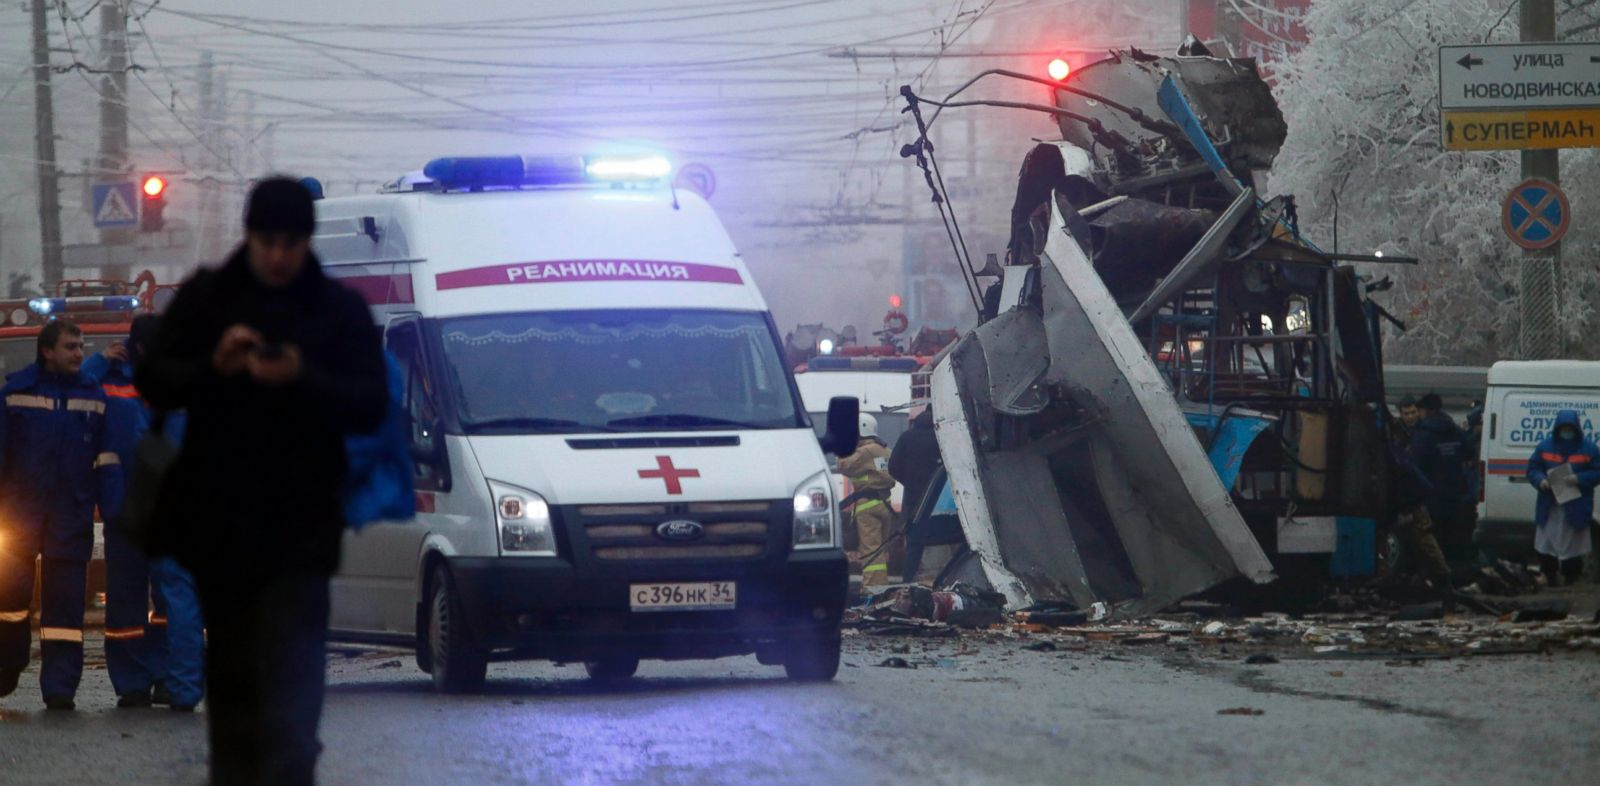 PHOTO: An ambulance leaves the site of a trolleybus explosion in Volgograd, Russia, Monday, Dec. 30, 2013. The explosion left 10 people dead Monday, a day after a suicide bombing that killed at least 17 at the citys main railway.